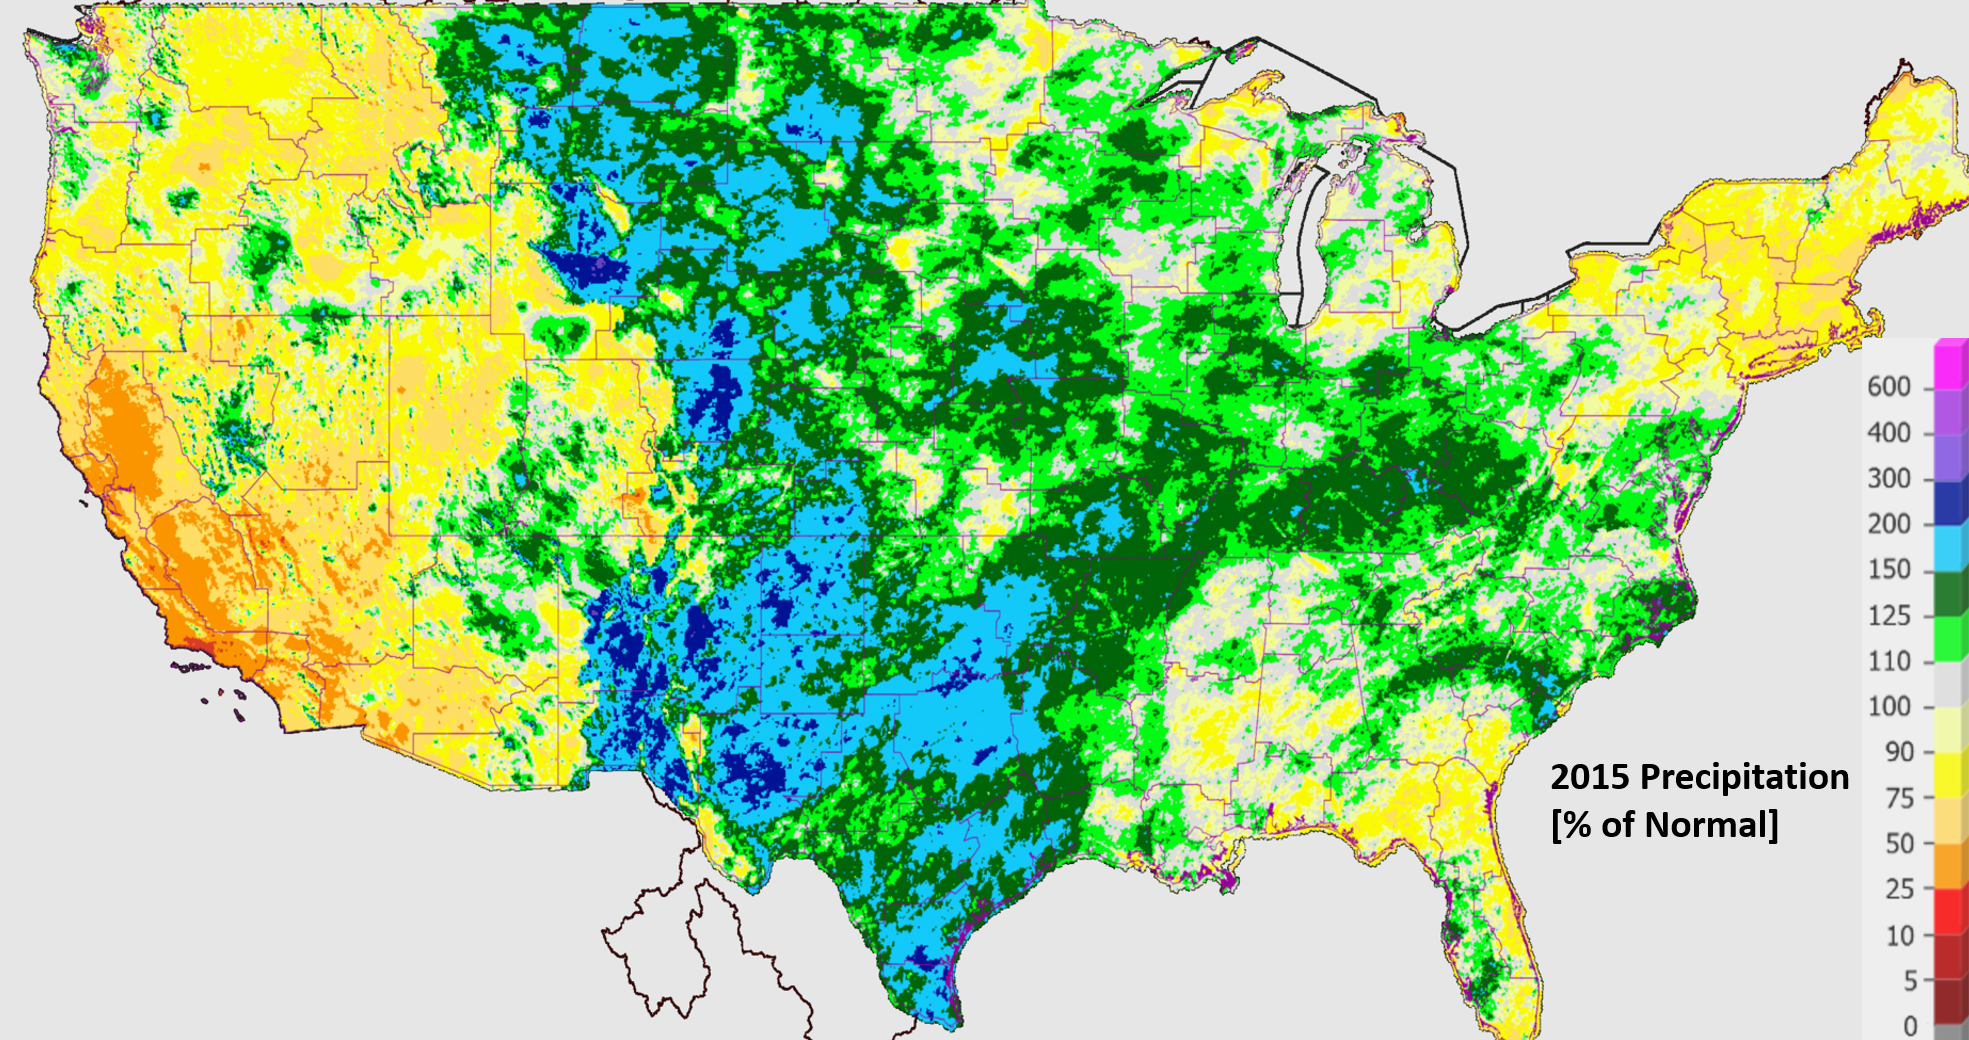 2015 Precipitation for the United State, given as a percentage of normal at each location